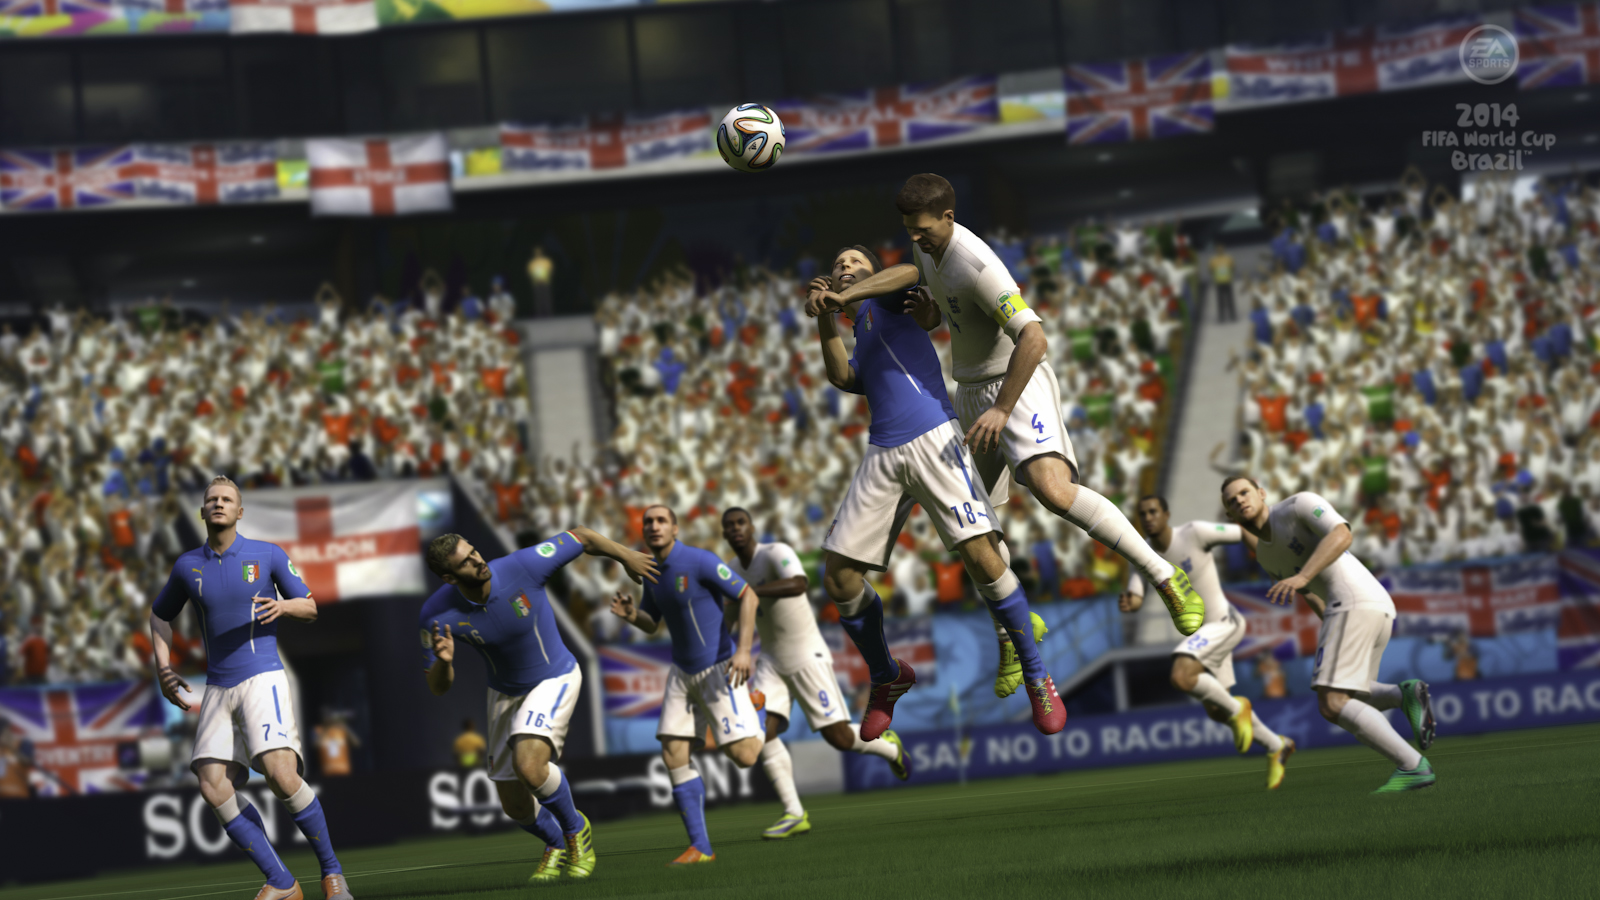 EASPORTS2014FIFAWorldCupBrazil_Xbox360_PS3_England_vs_Italy_header_WM (1)